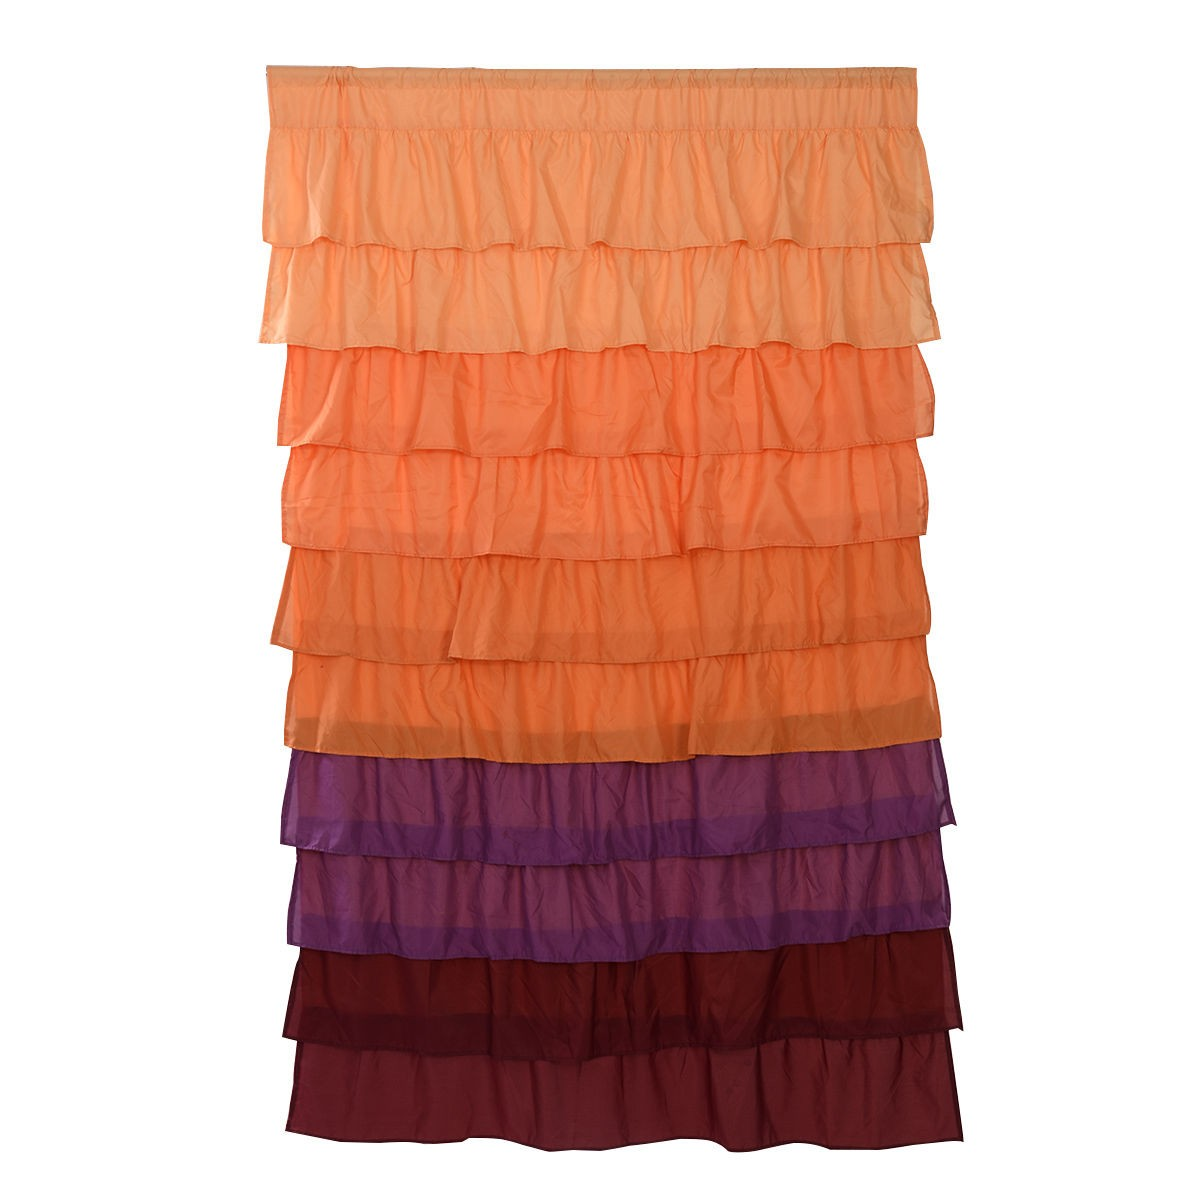 Ruffled curtain panel